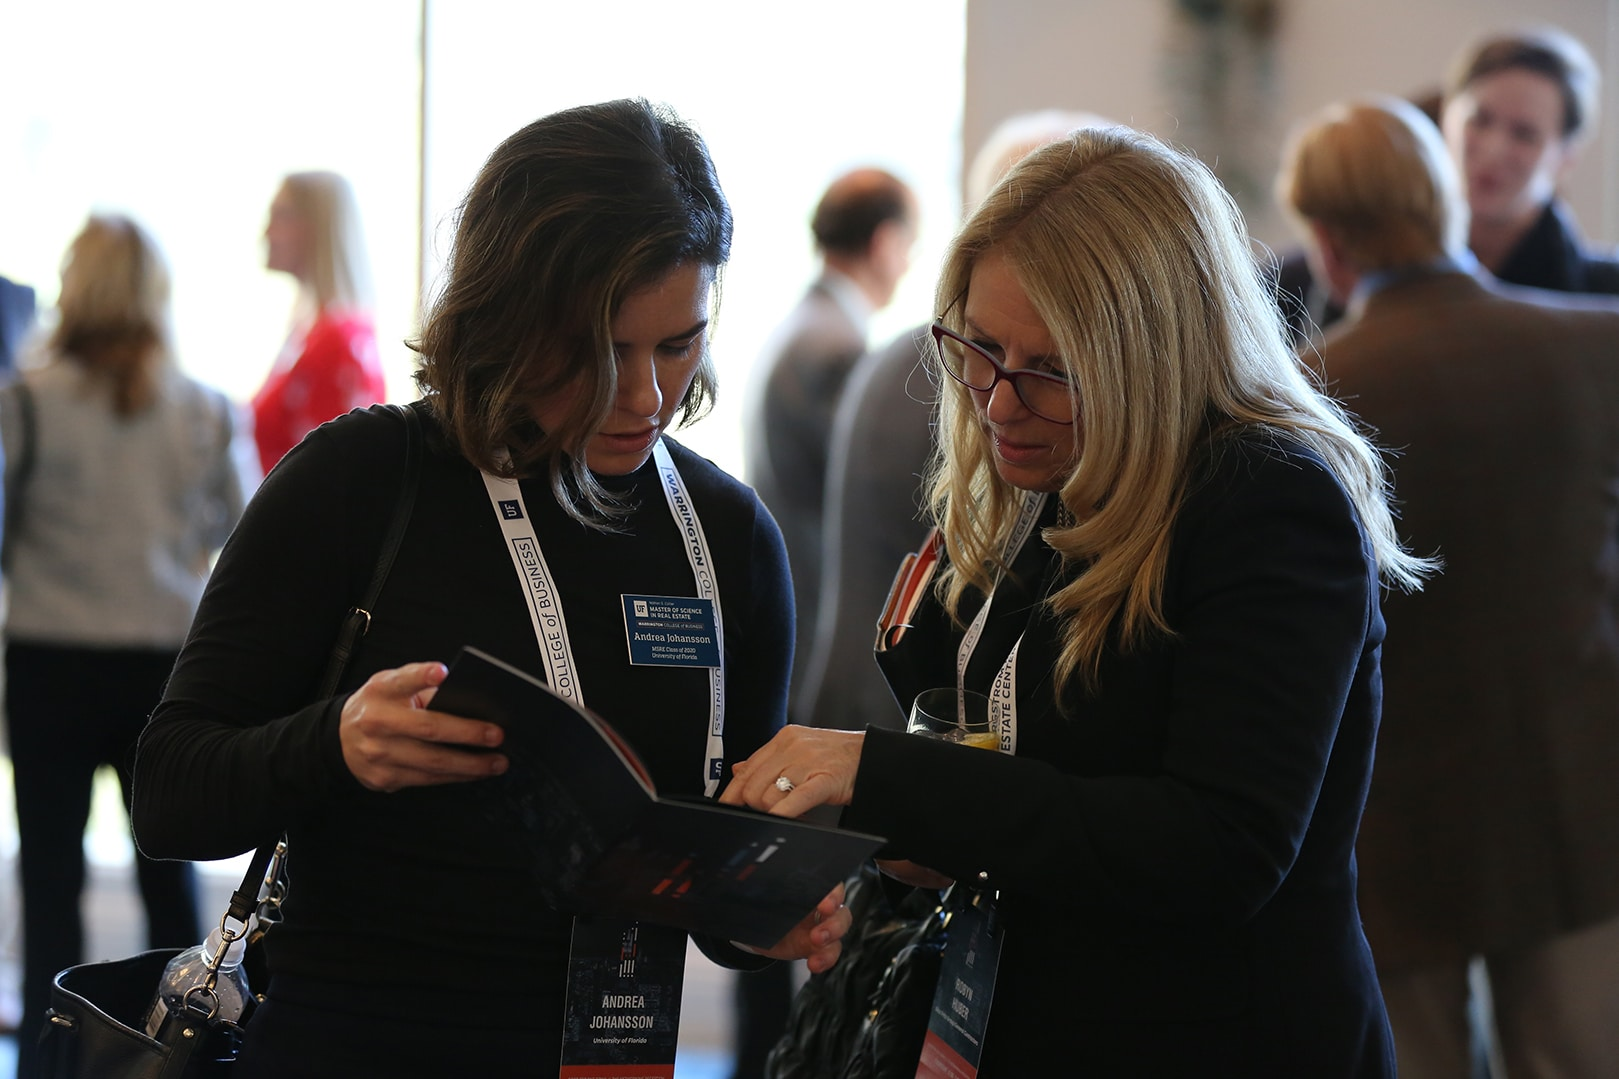 MSRE student Andrea Johansson looks at the Trends Conference program with Robyn Huber